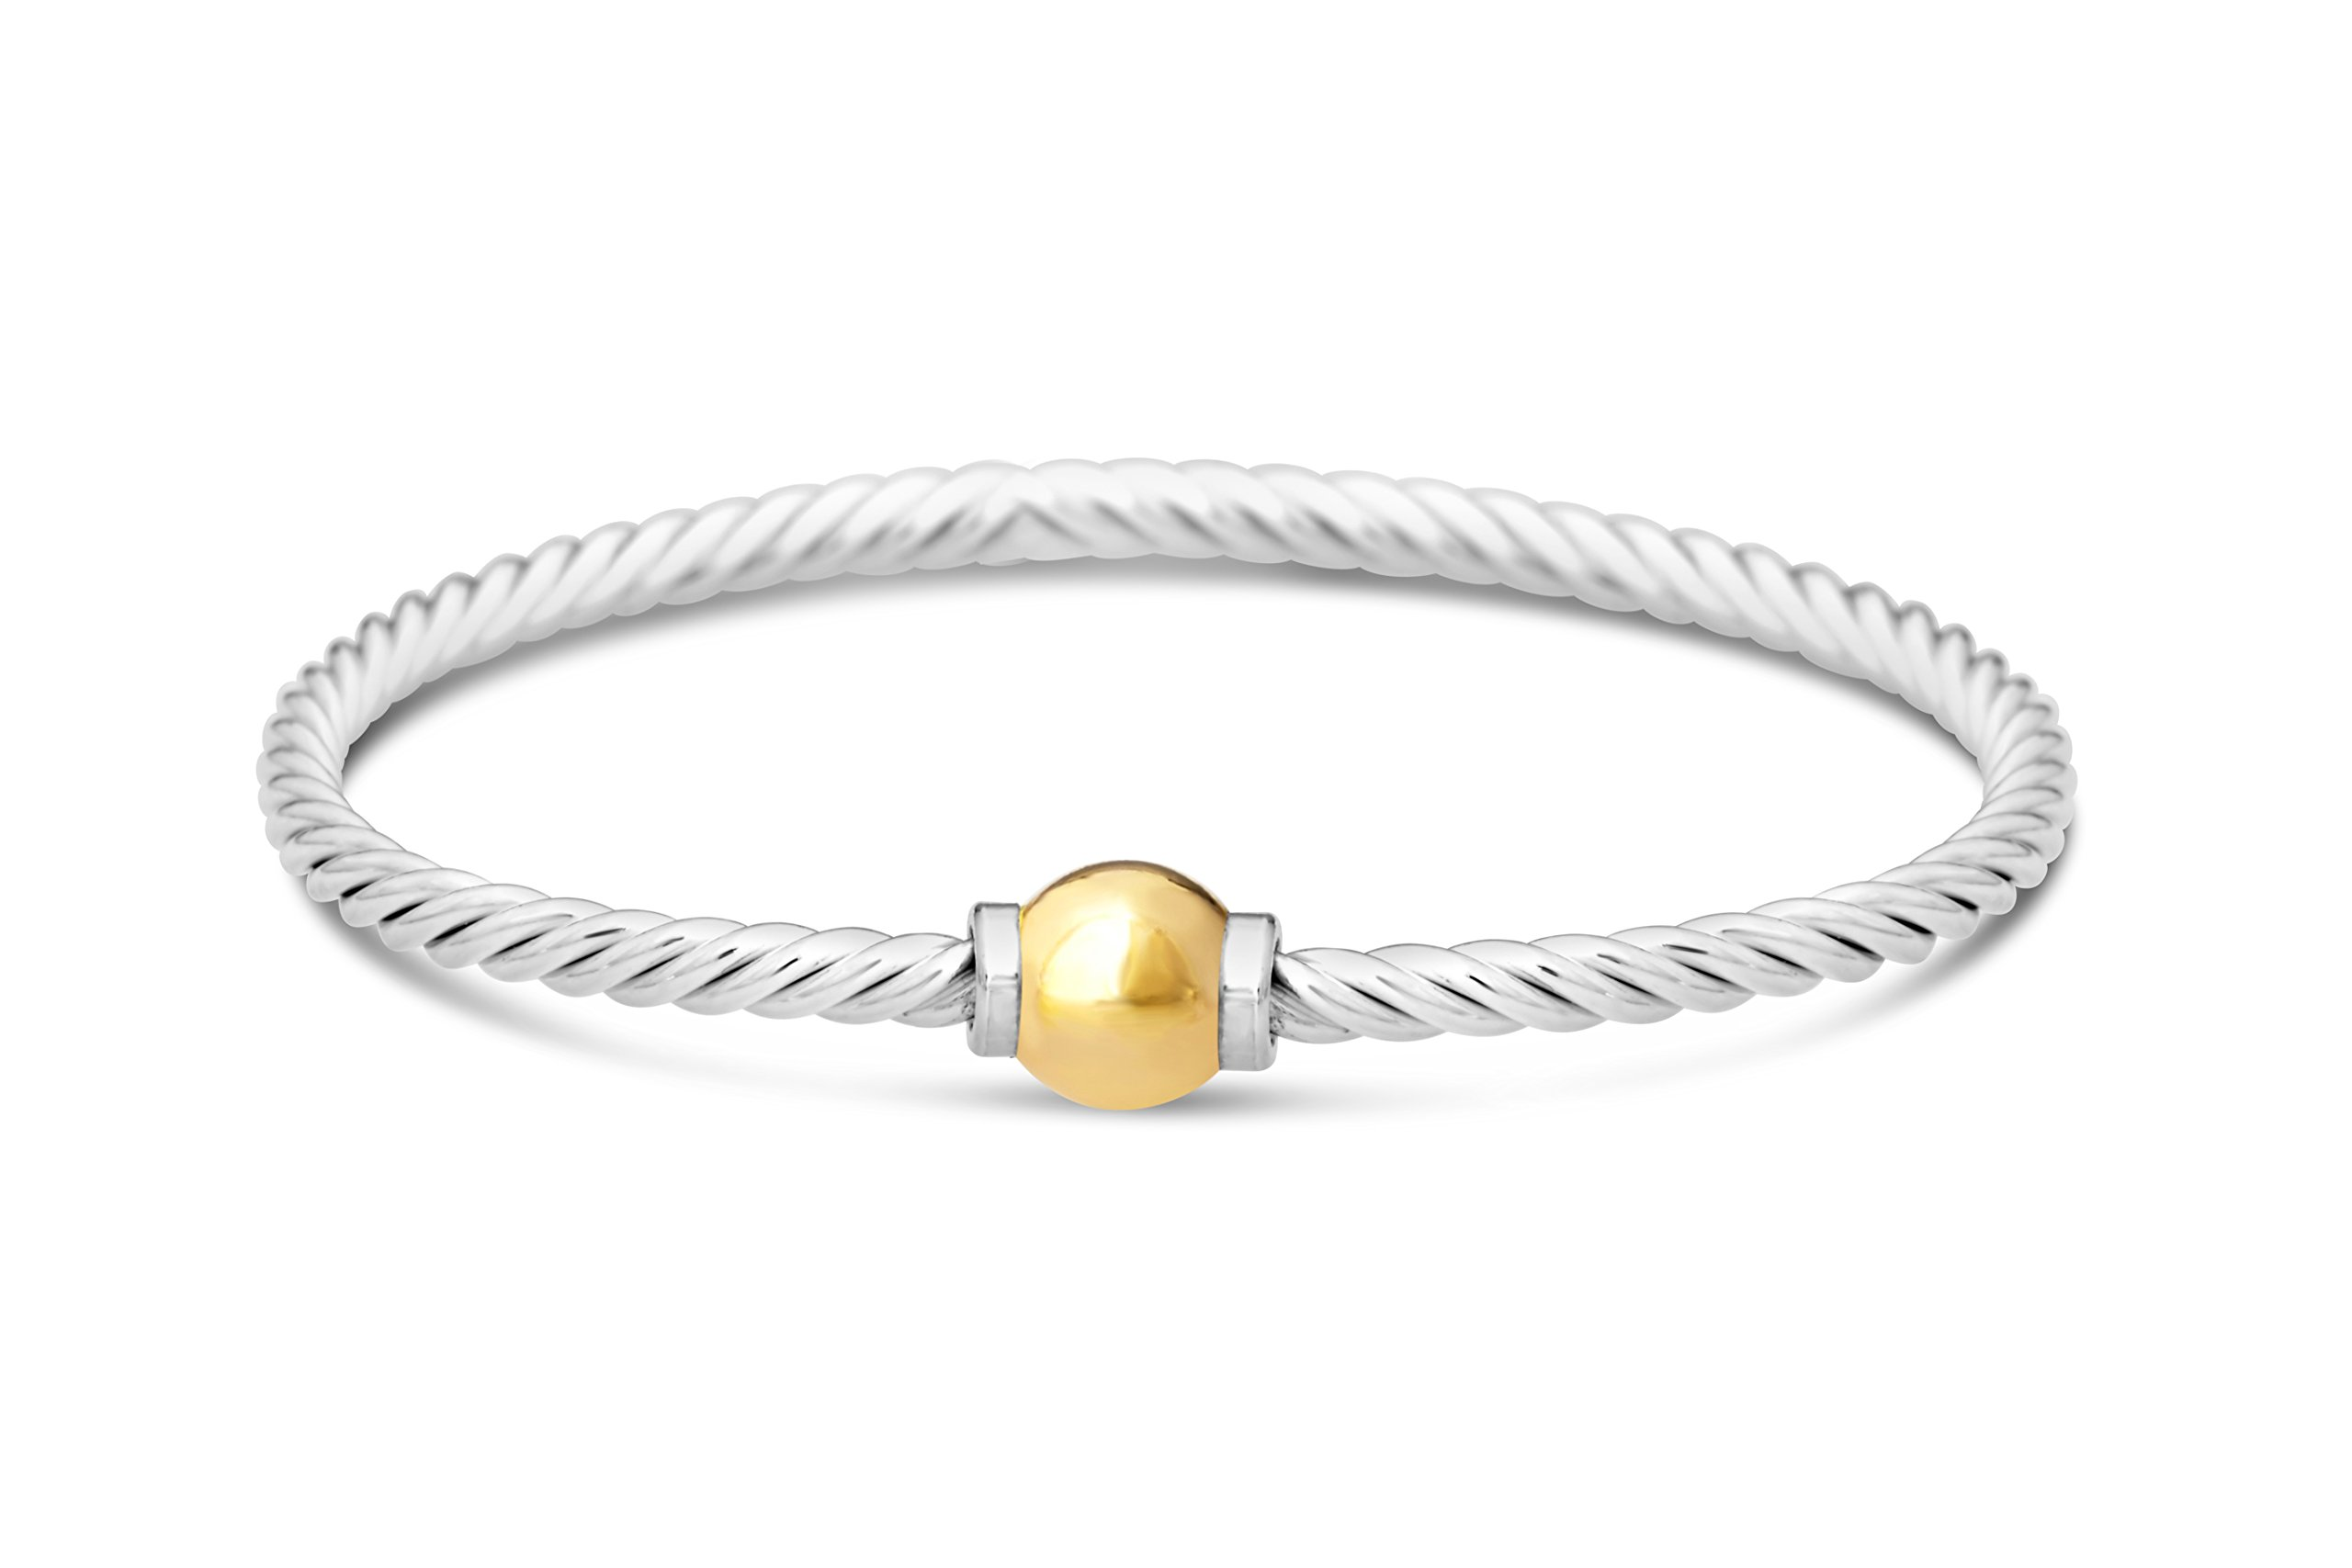 Beach Ball Twist Bracelet from Cape Cod two-tone14k solid ball gold-925 sterling silver bangle (6.5)